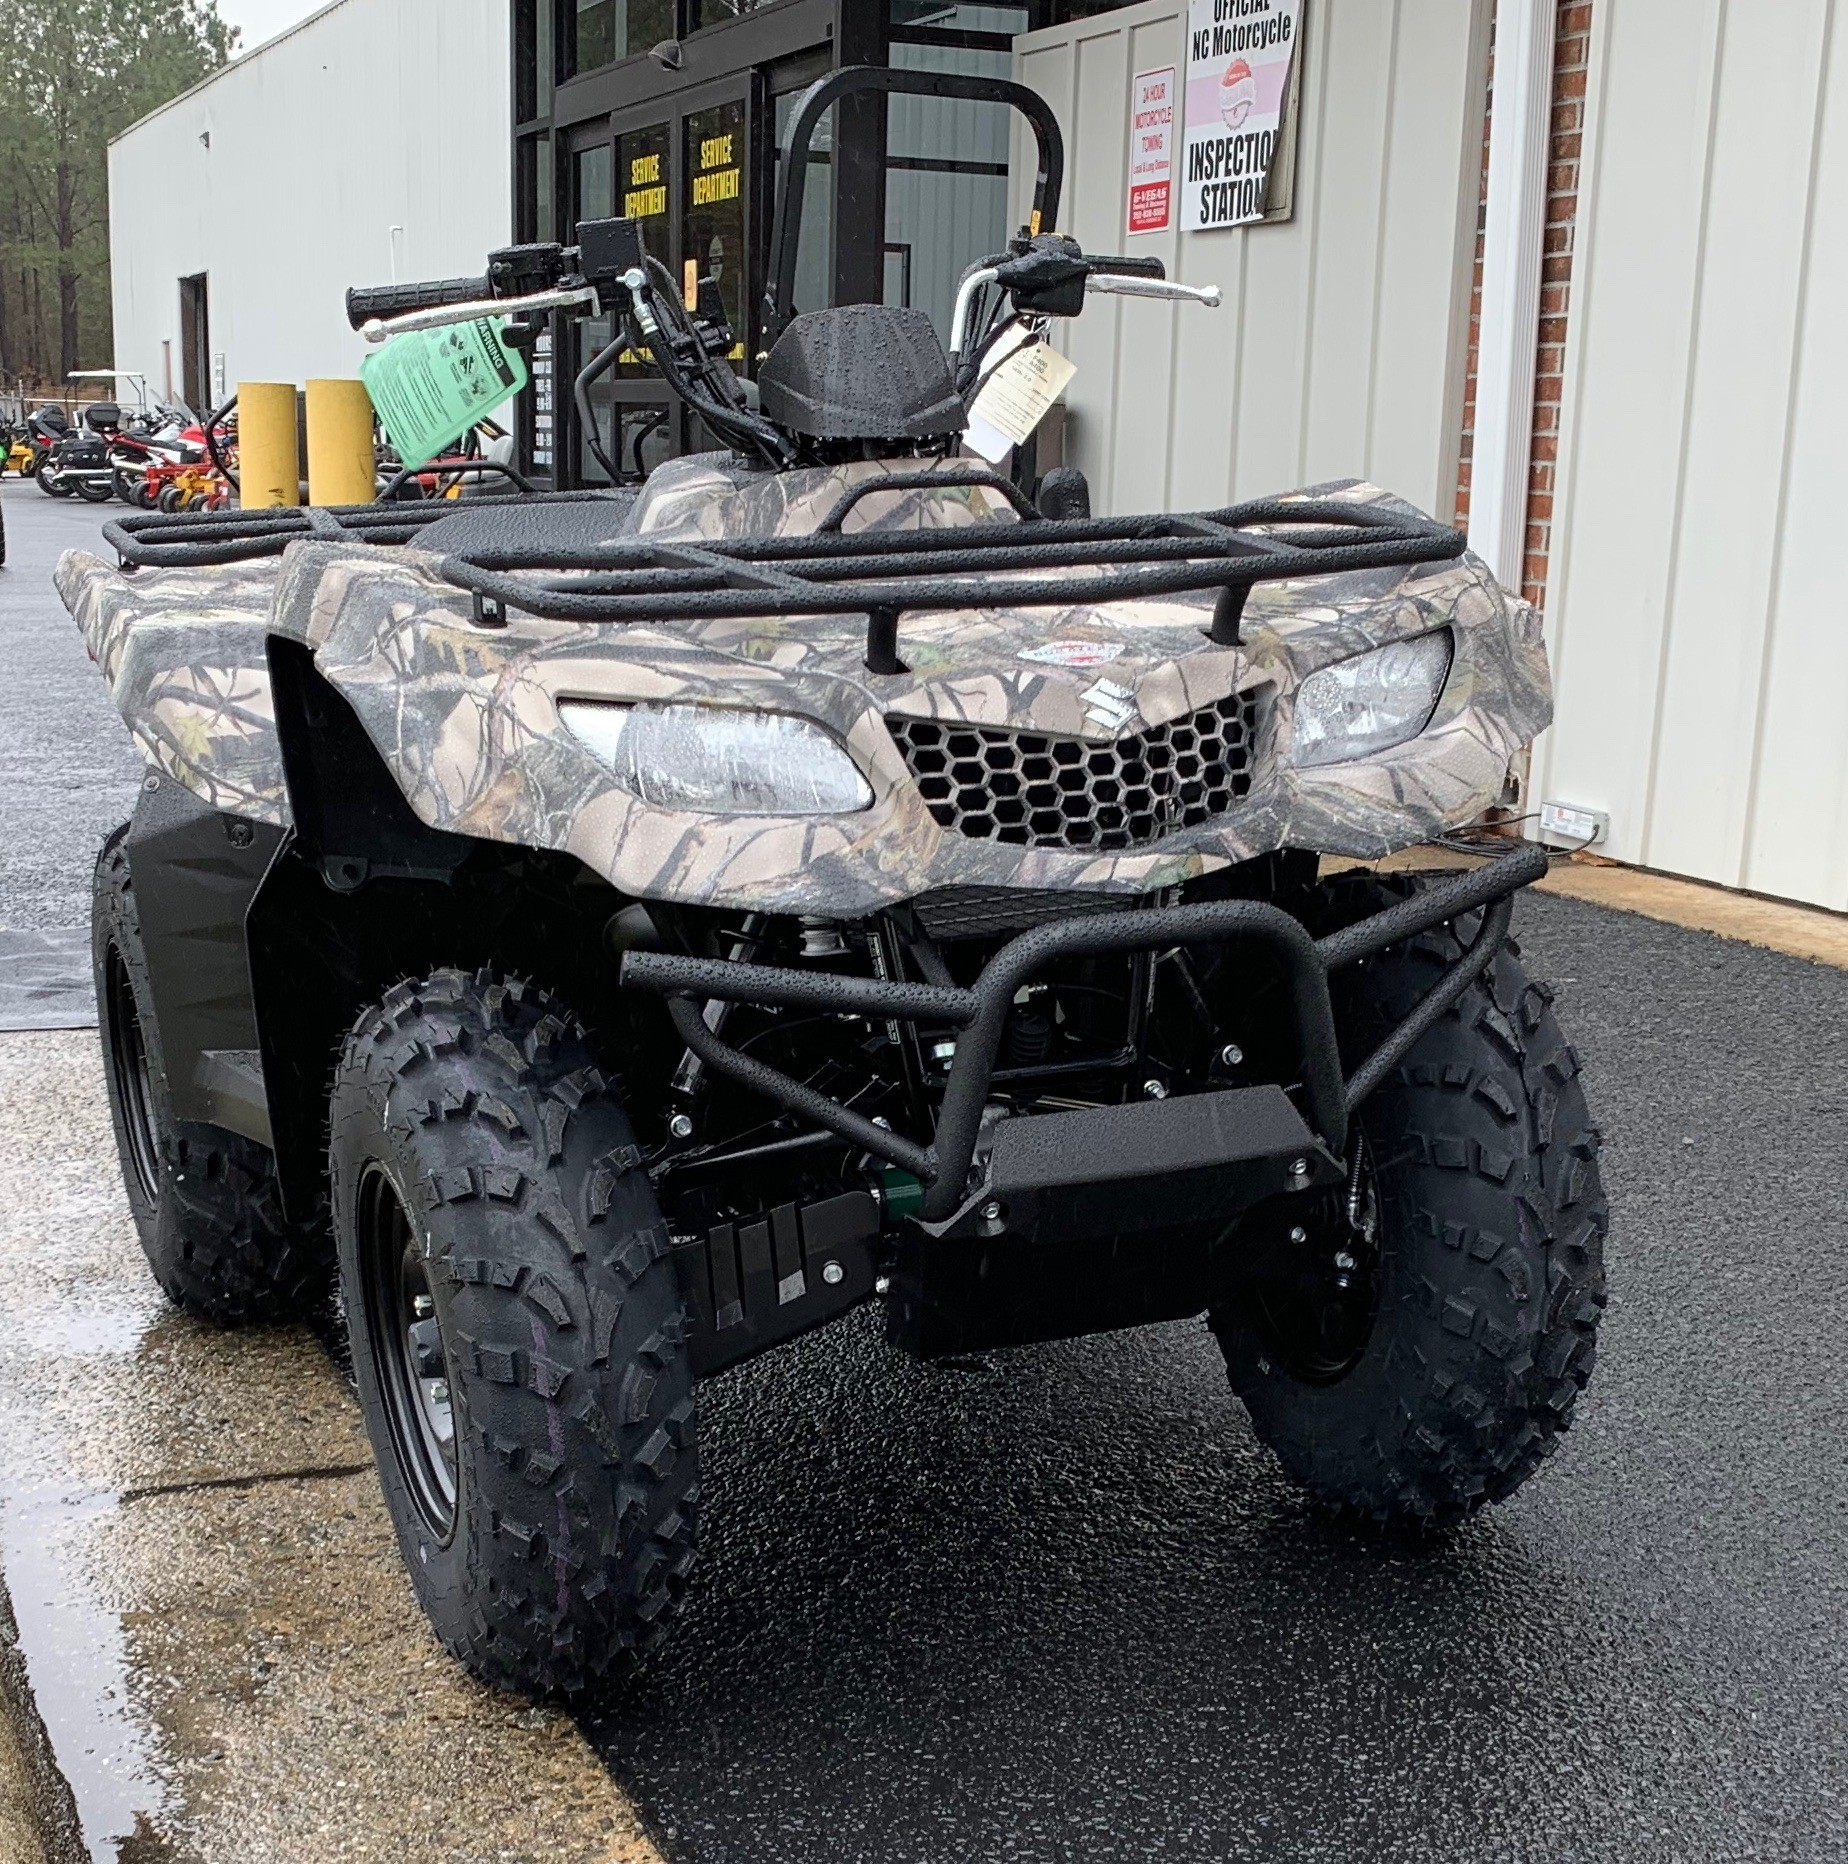 2019 Suzuki KingQuad 400ASi Camo in Greenville, North Carolina - Photo 4